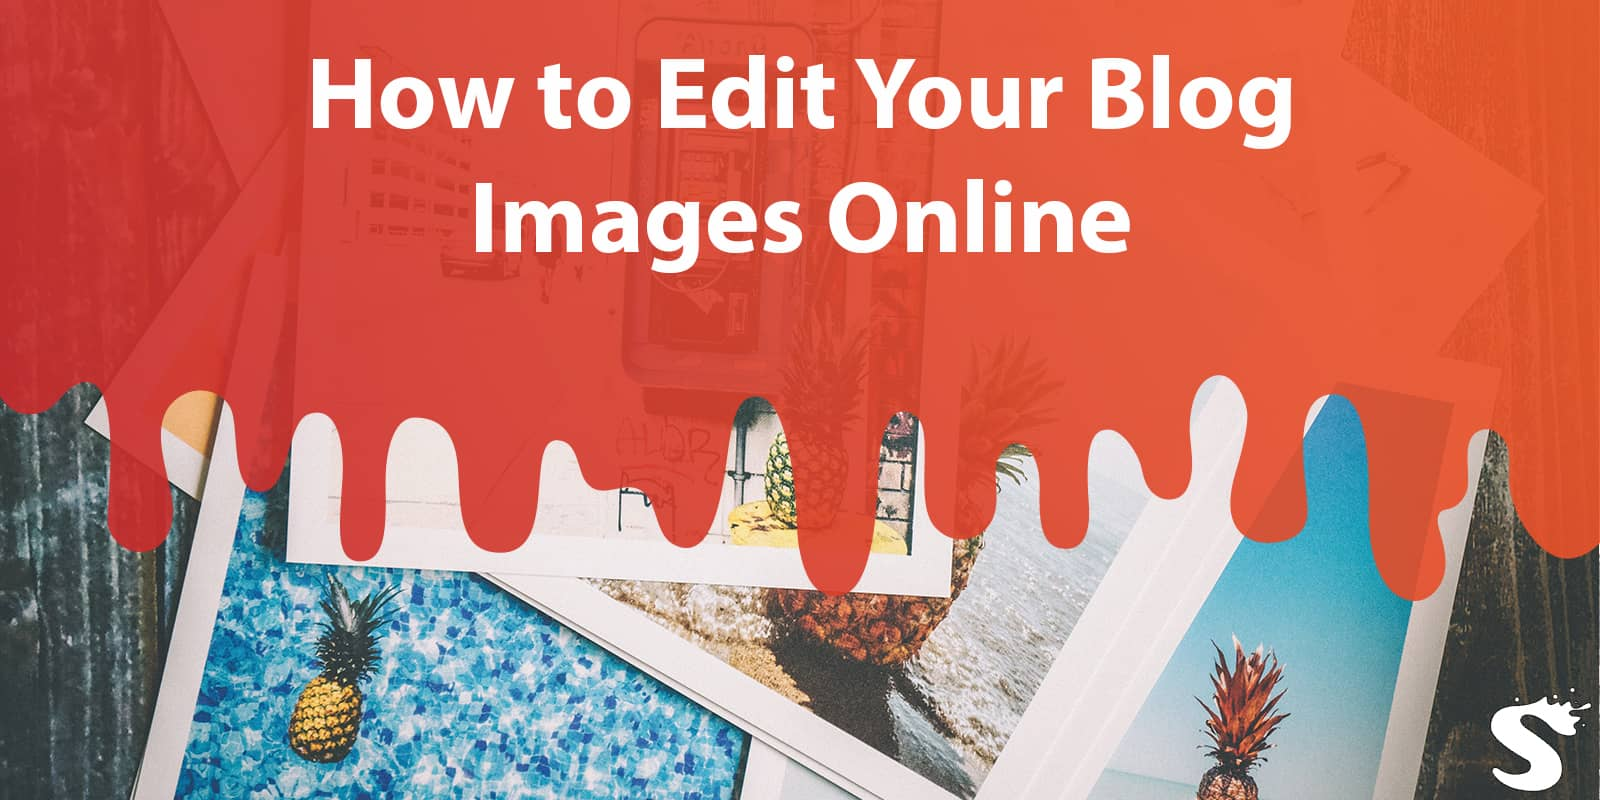 How to Edit Your Blog Images Online